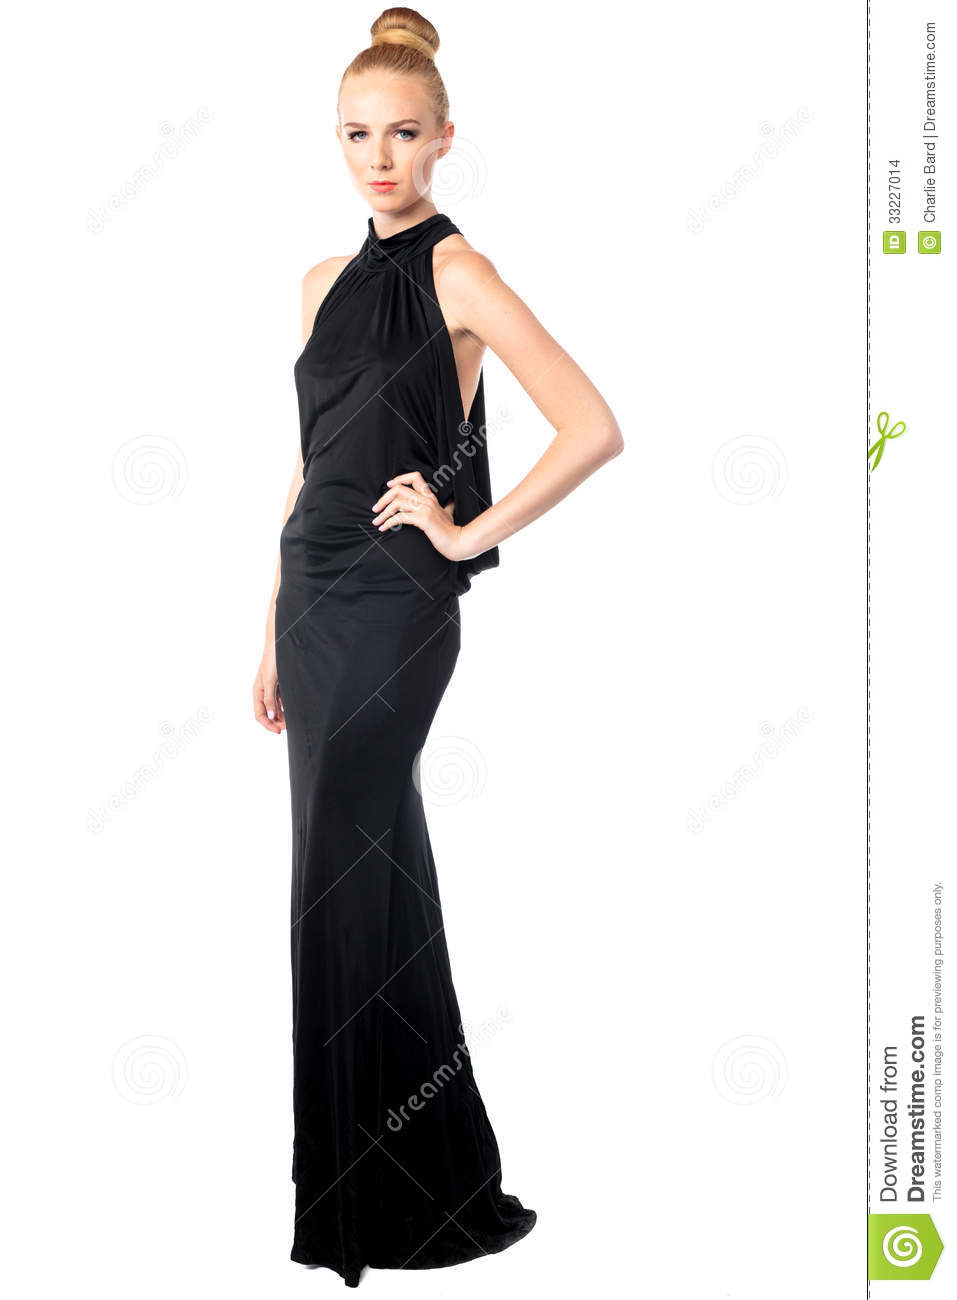 Glamorous Woman In An Evening Gown Stock Photo - Image of ...